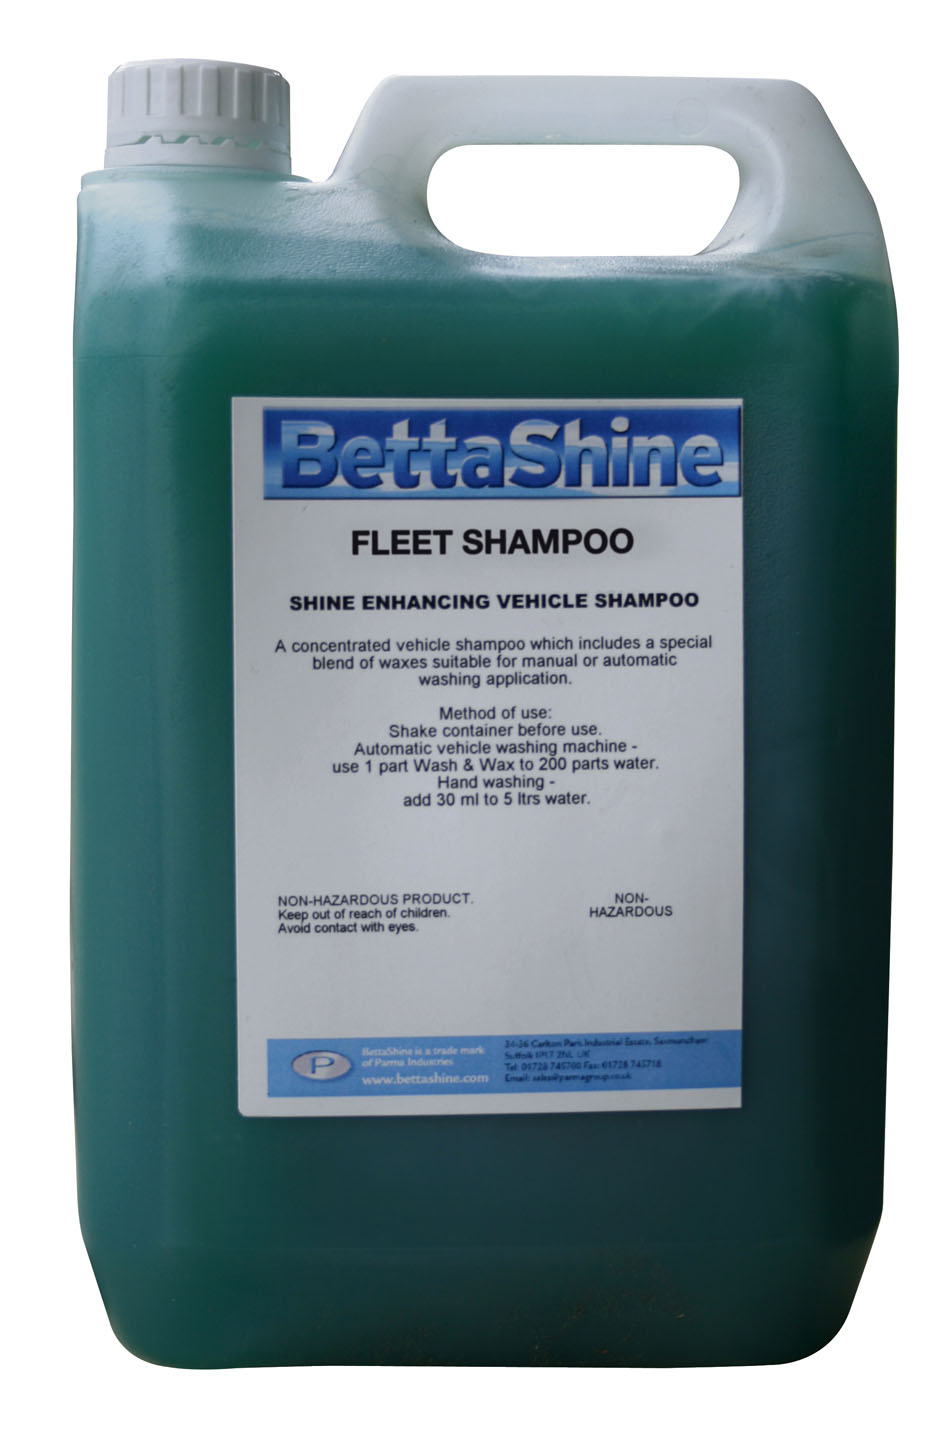 Fleet Shampoo & Wax